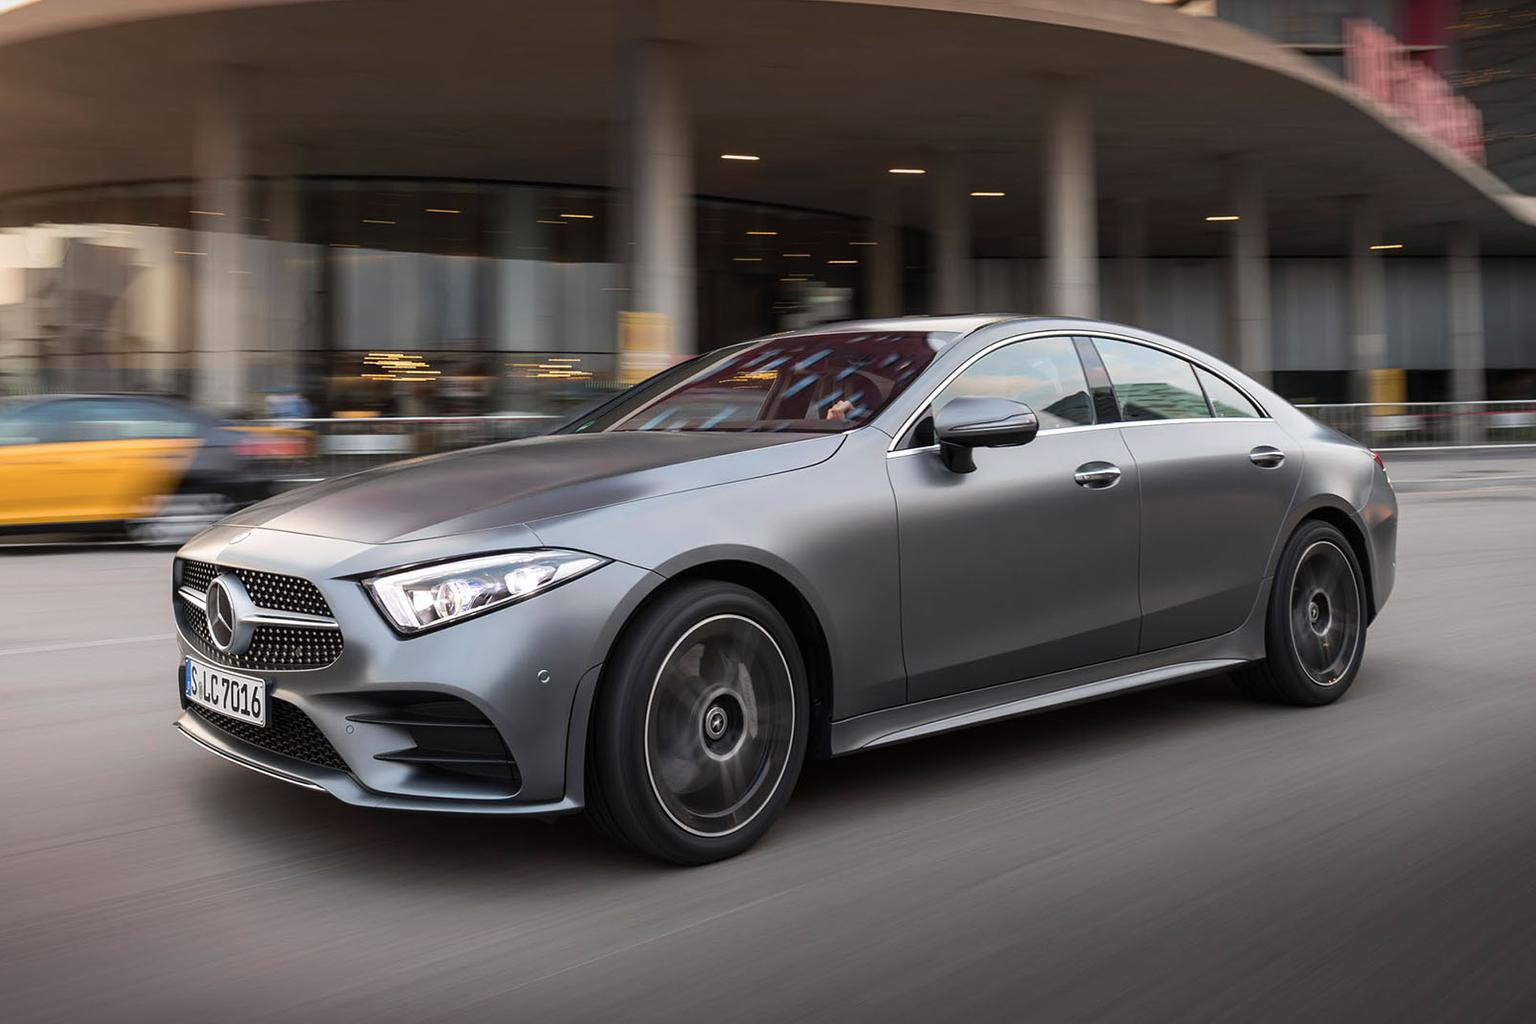 2018 Mercedes-Benz CLS review - price, specs and release date